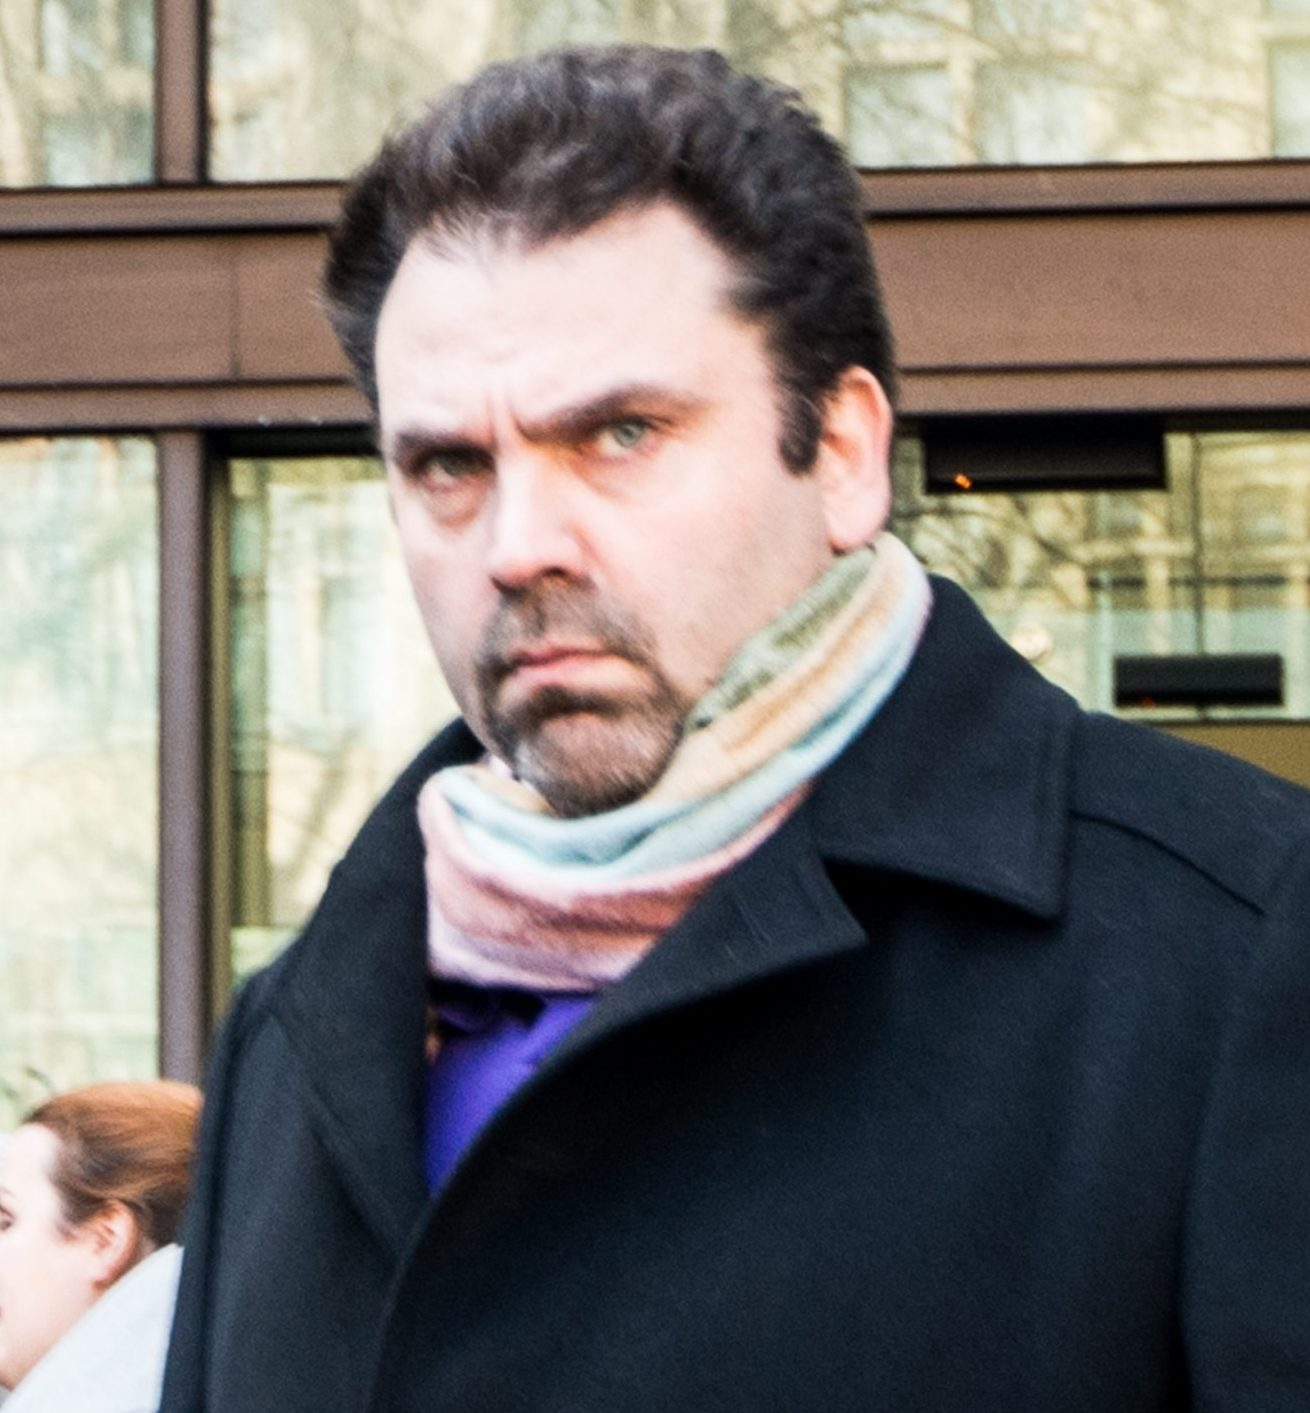 Widow's claims against opera singer are 'fantasy'